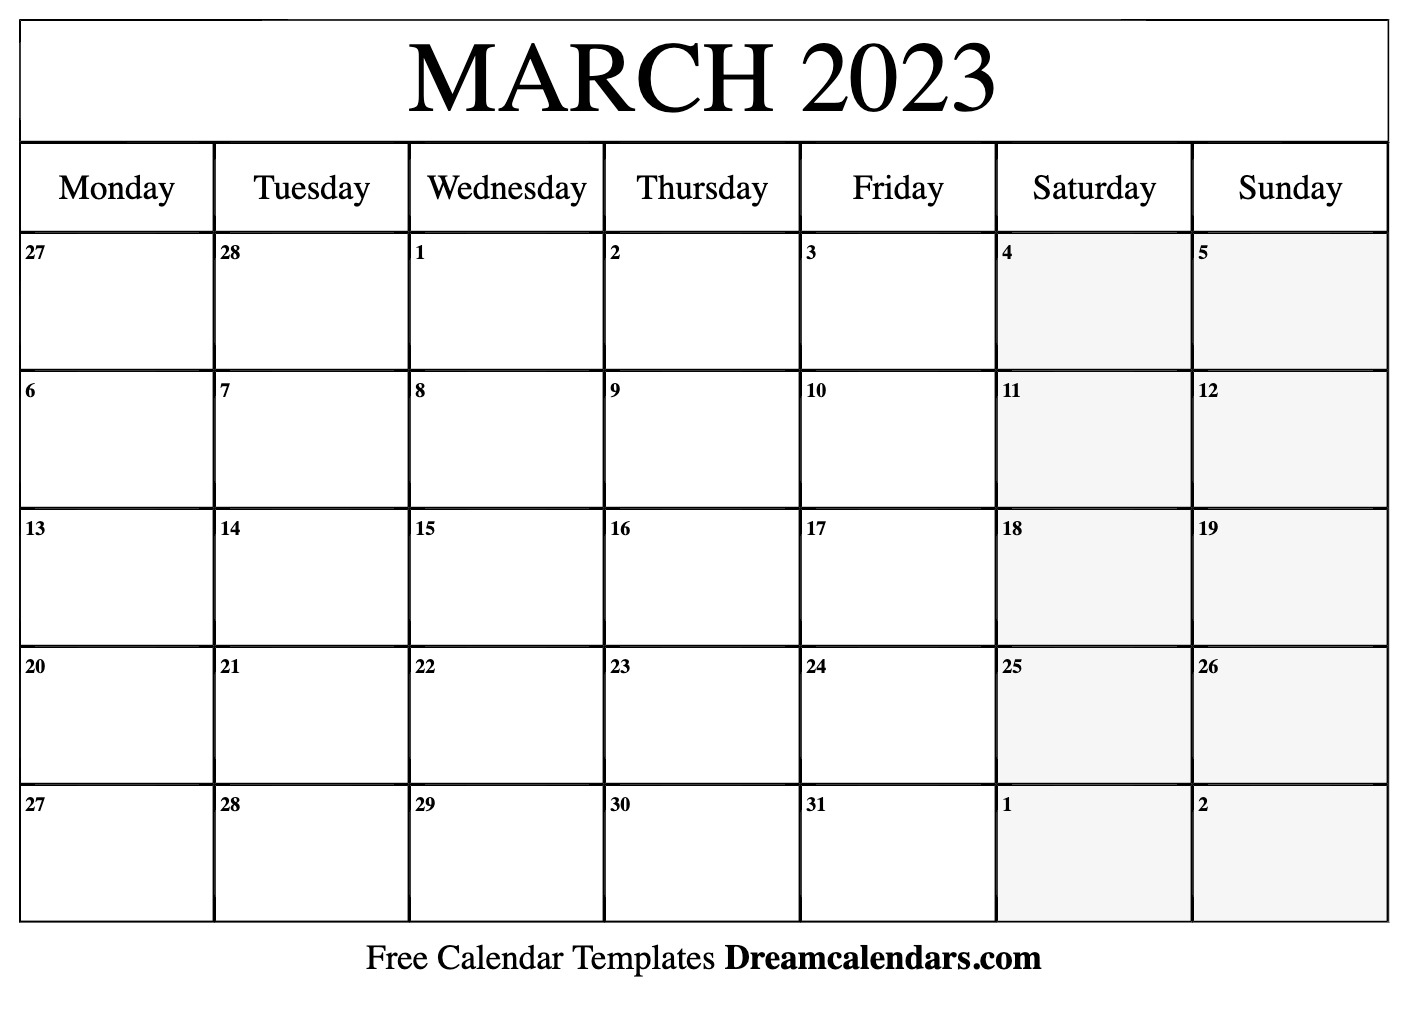 March 2023 Calendar | Free Blank Printable Templates with regard to Sunset And Sunrise Calender 2022 2023